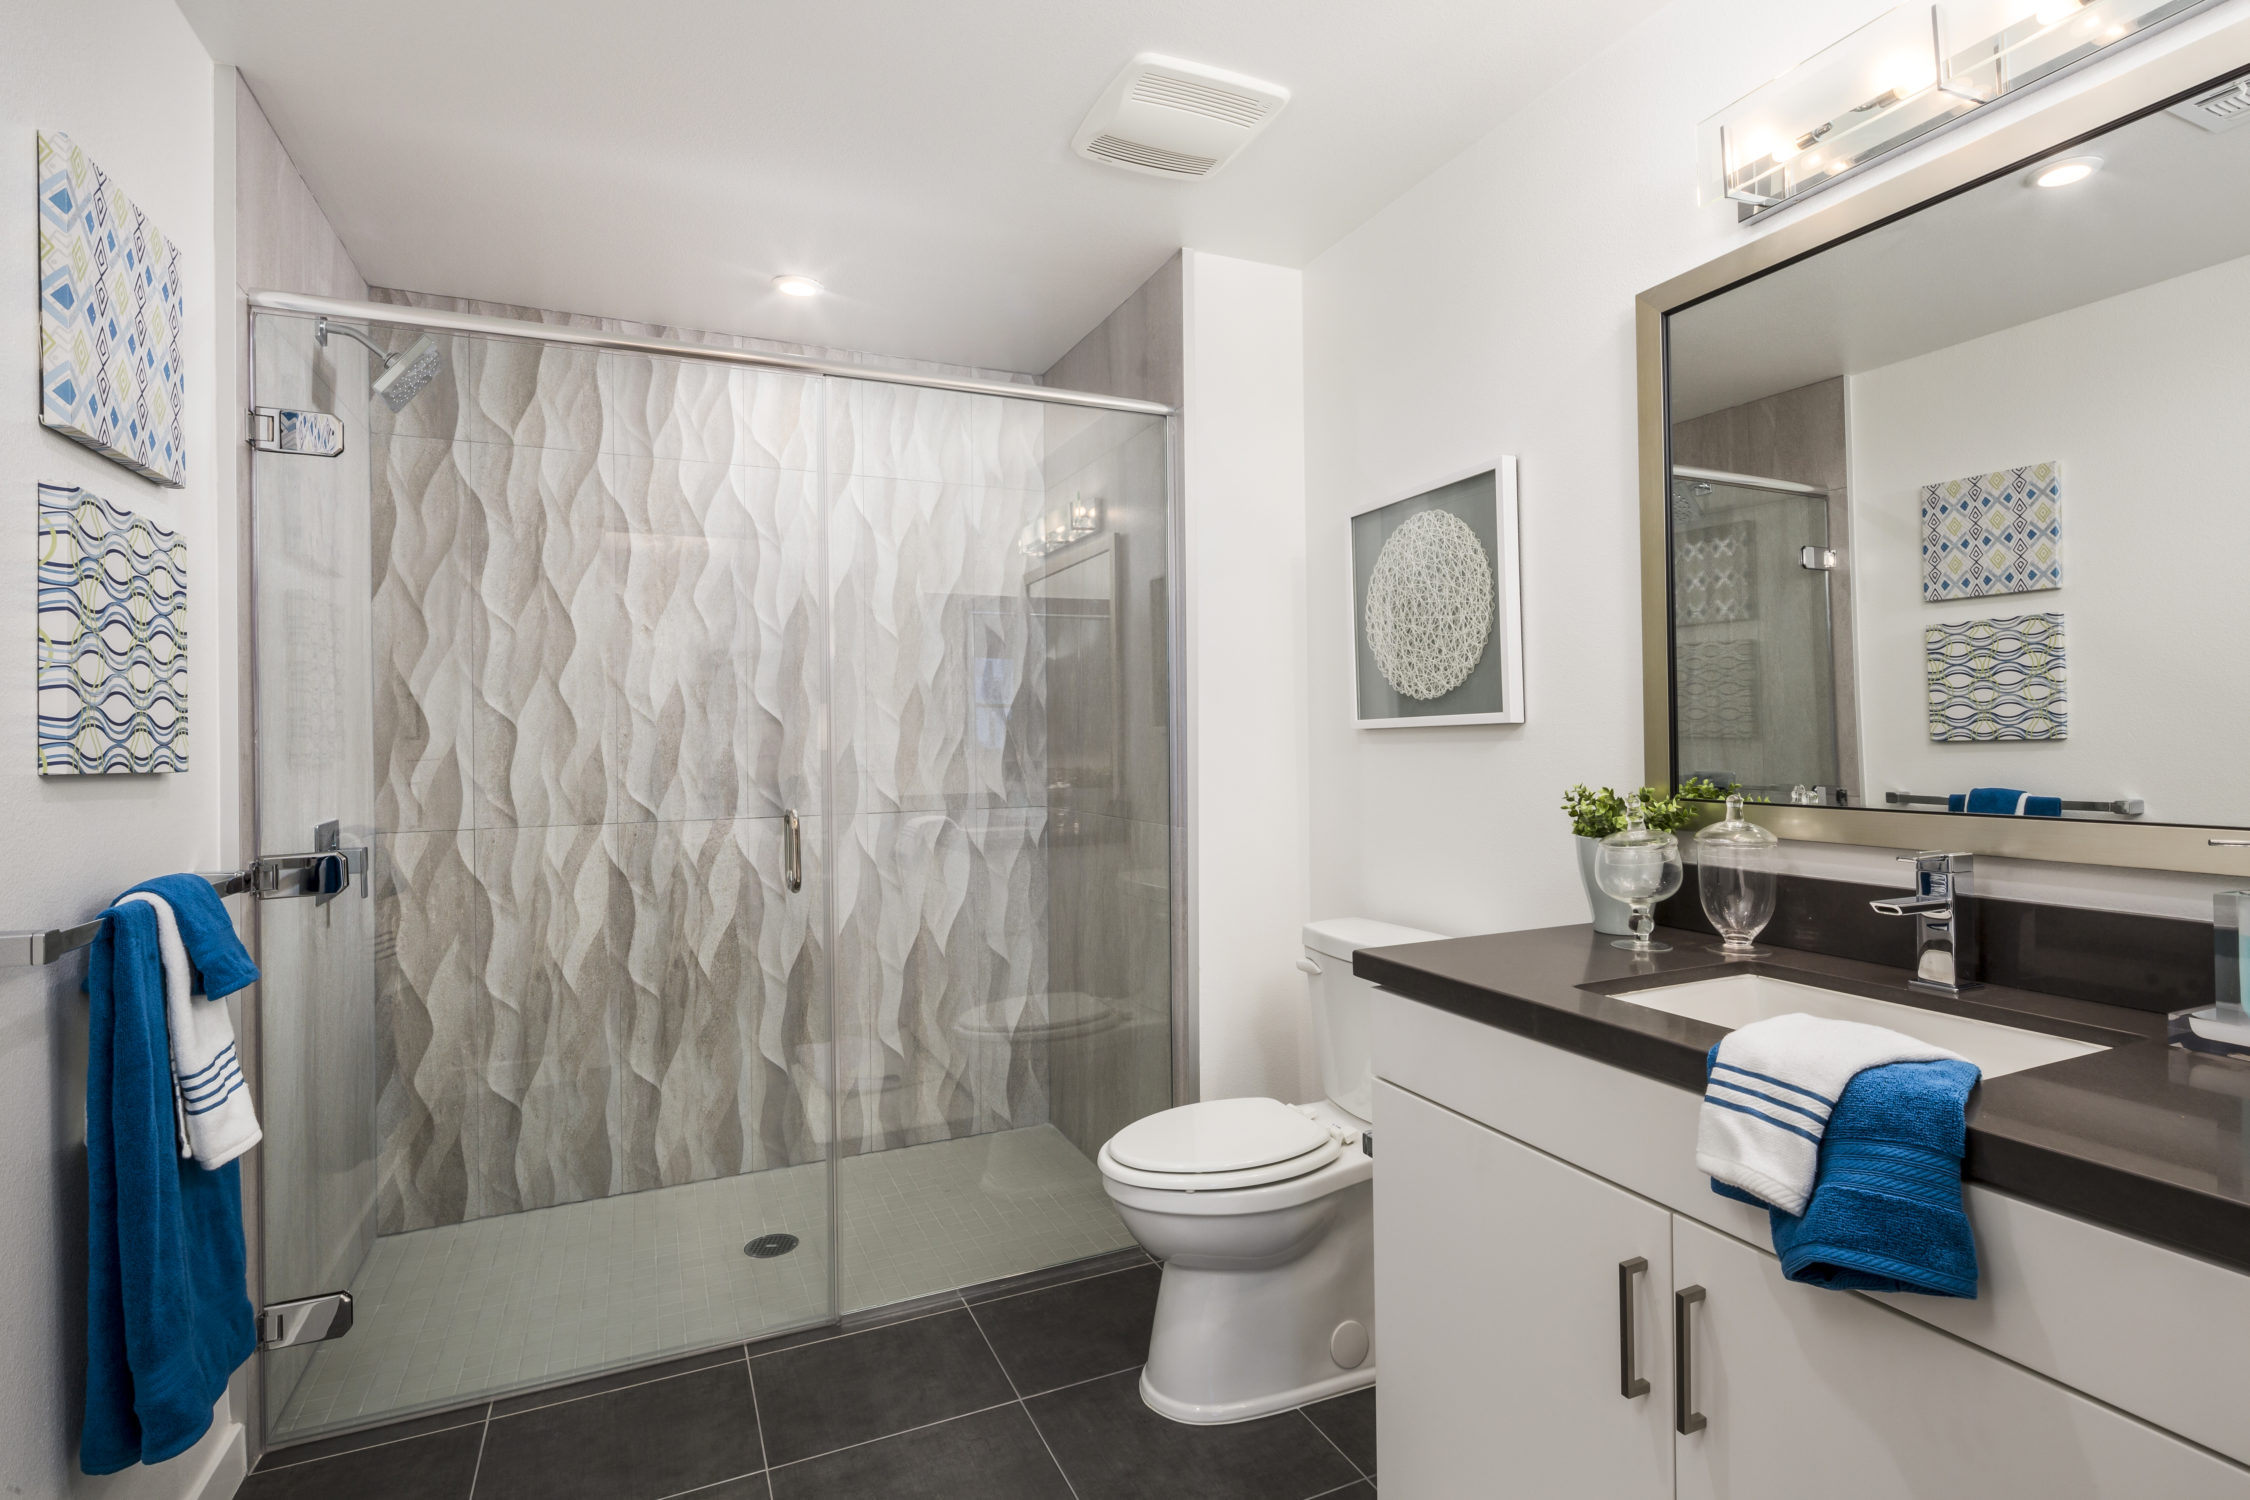 Domain WeHo - New Luxury Apartments in West Hollywood   Home